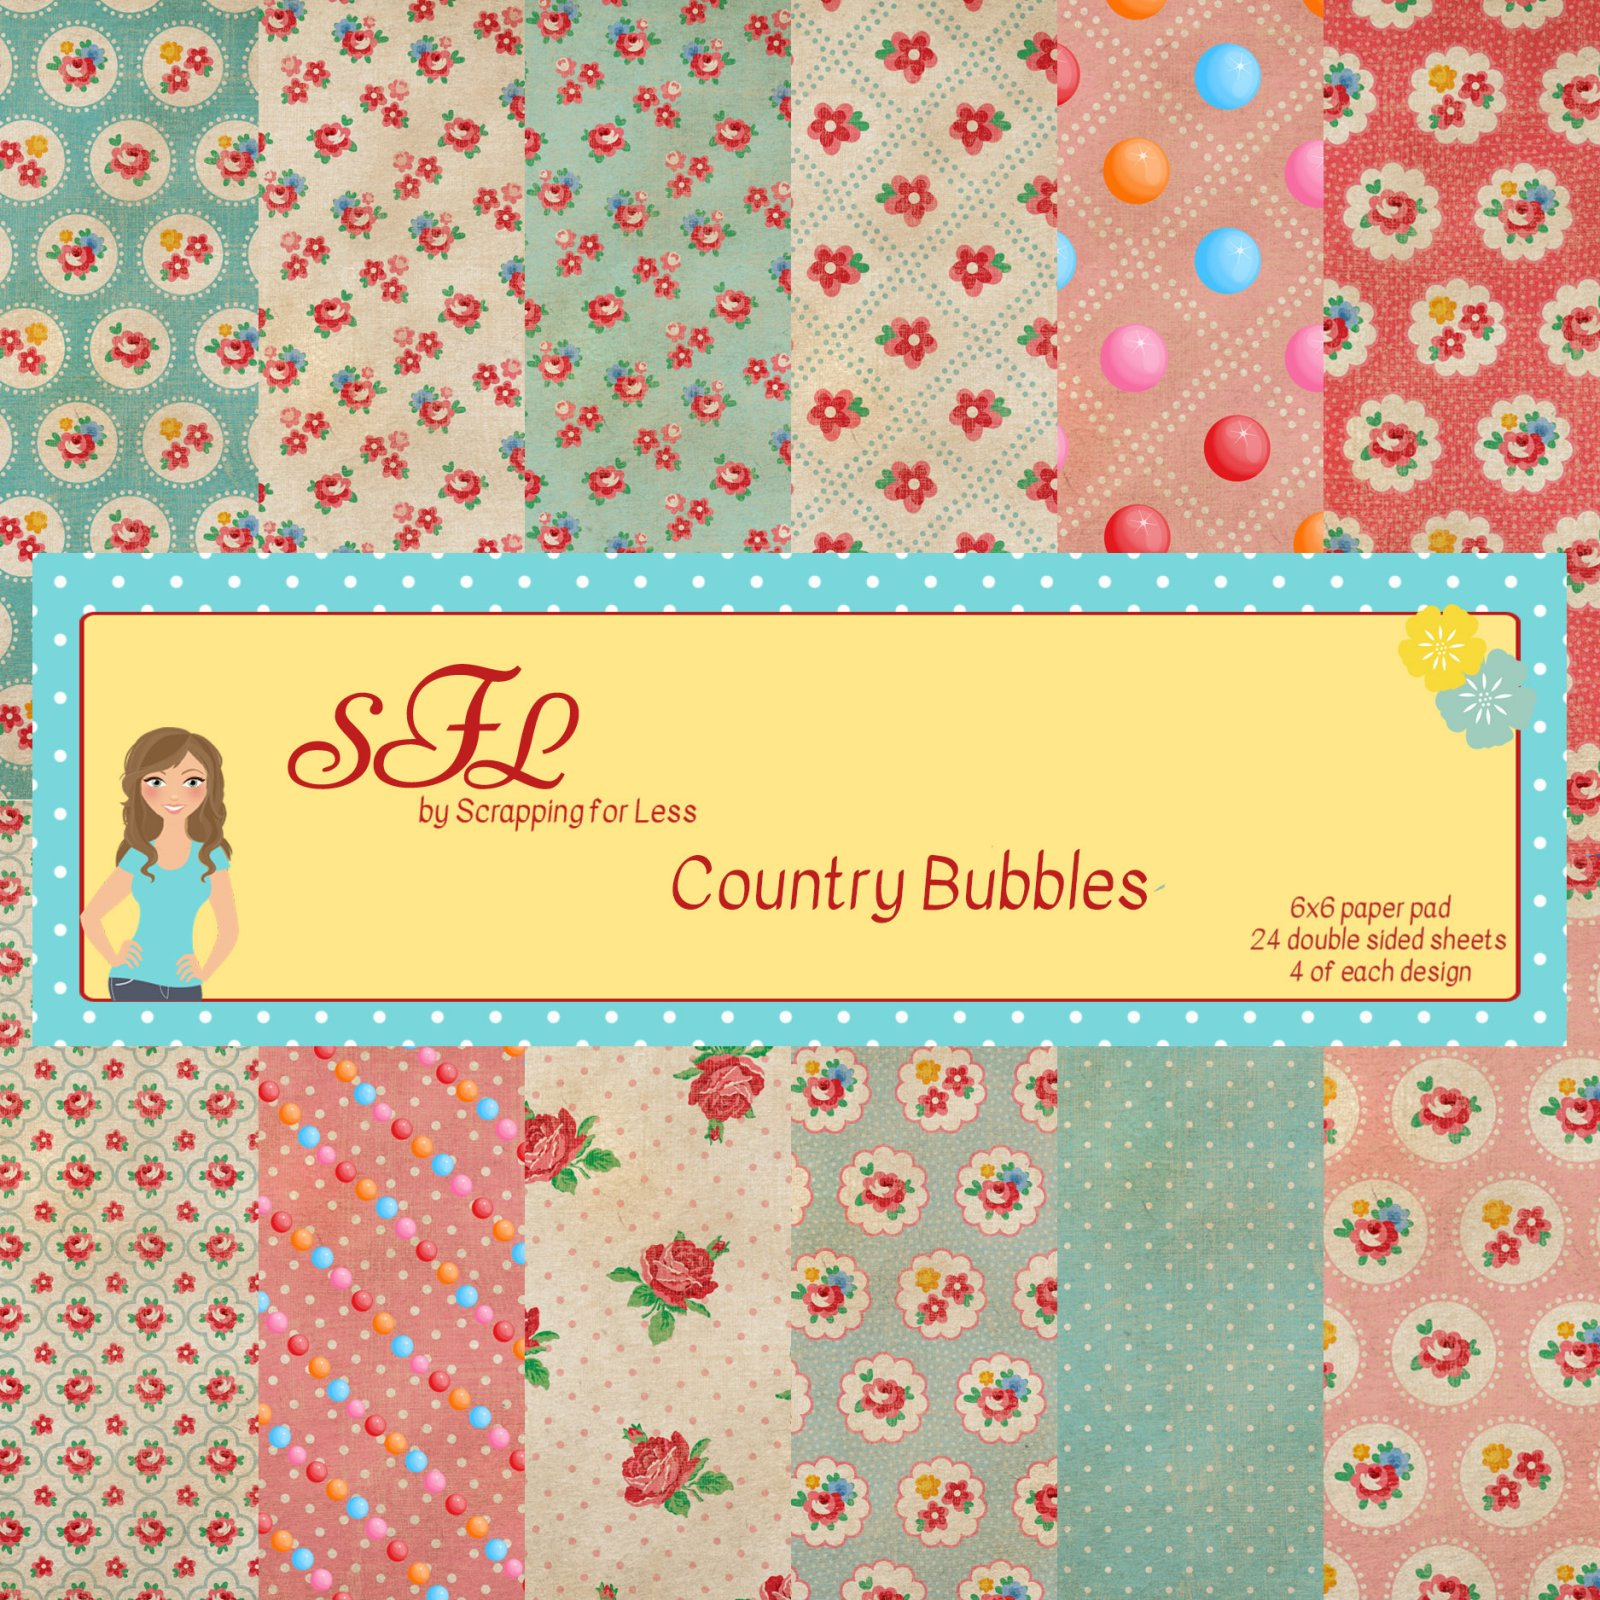 Scrapping for Less Country Bubbles 6x6 Paper Pad